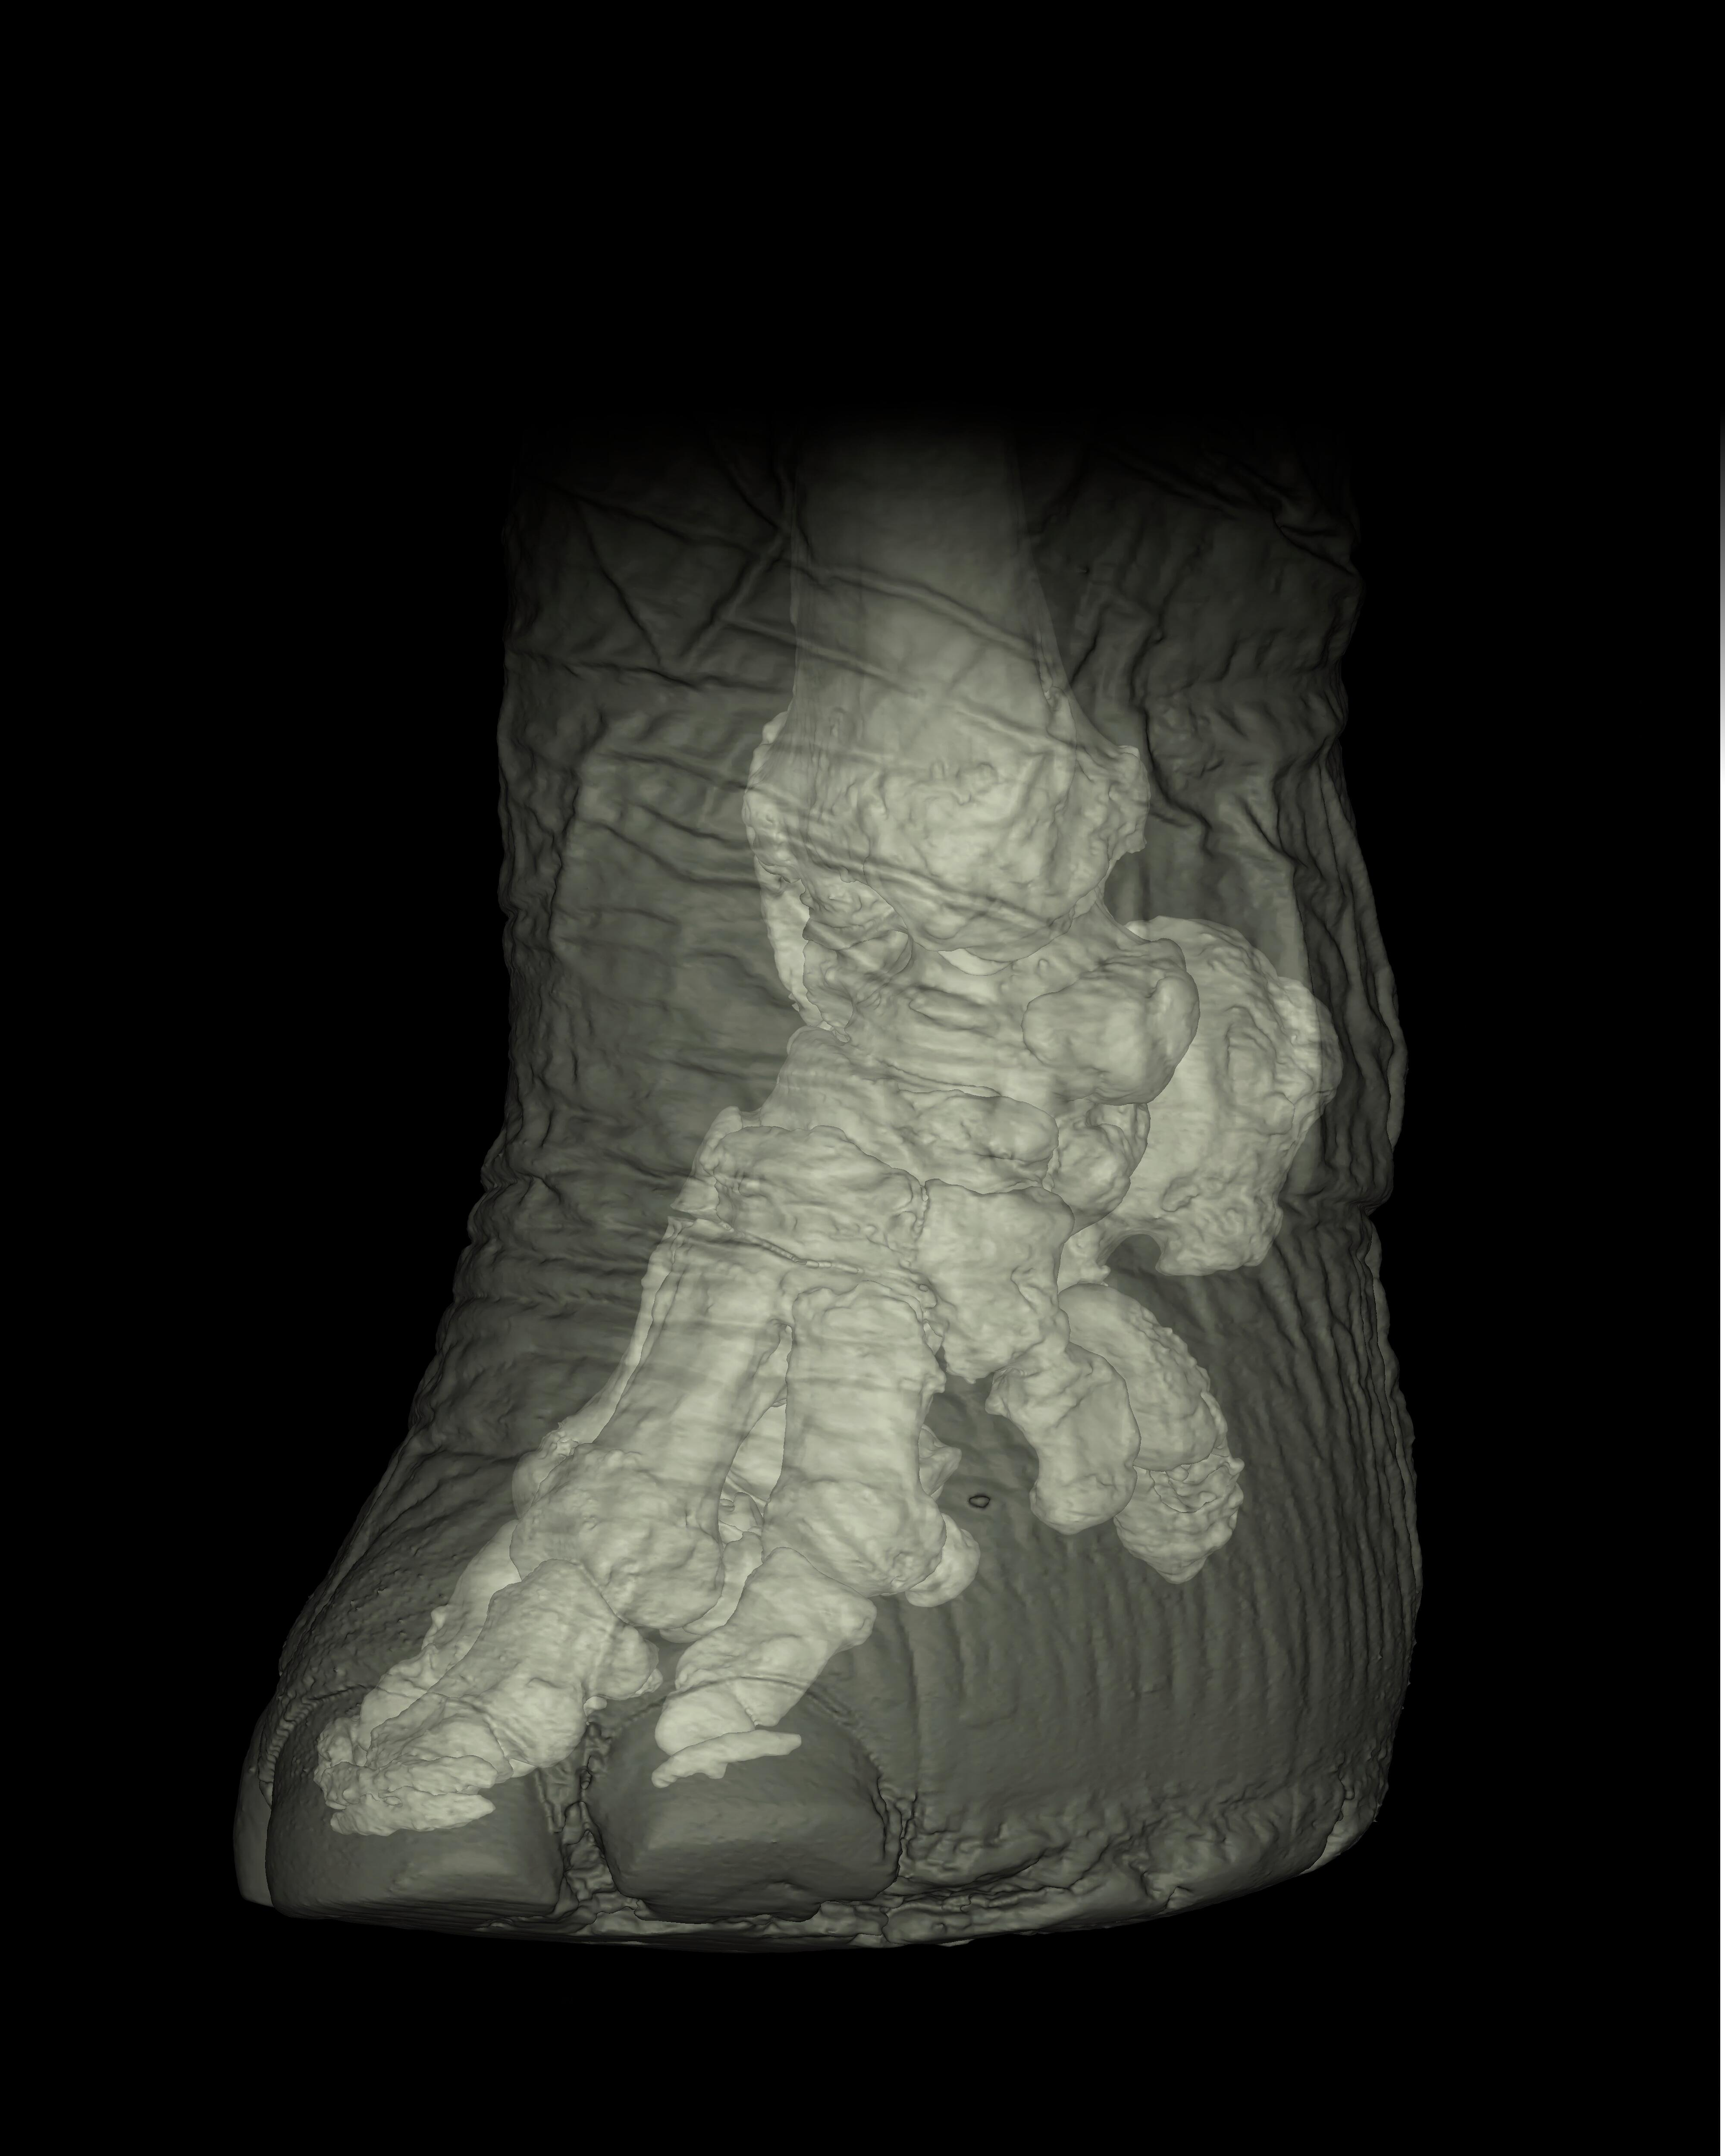 Reconstructed Ct Scan Of Elephant Foot Wellcome Collection